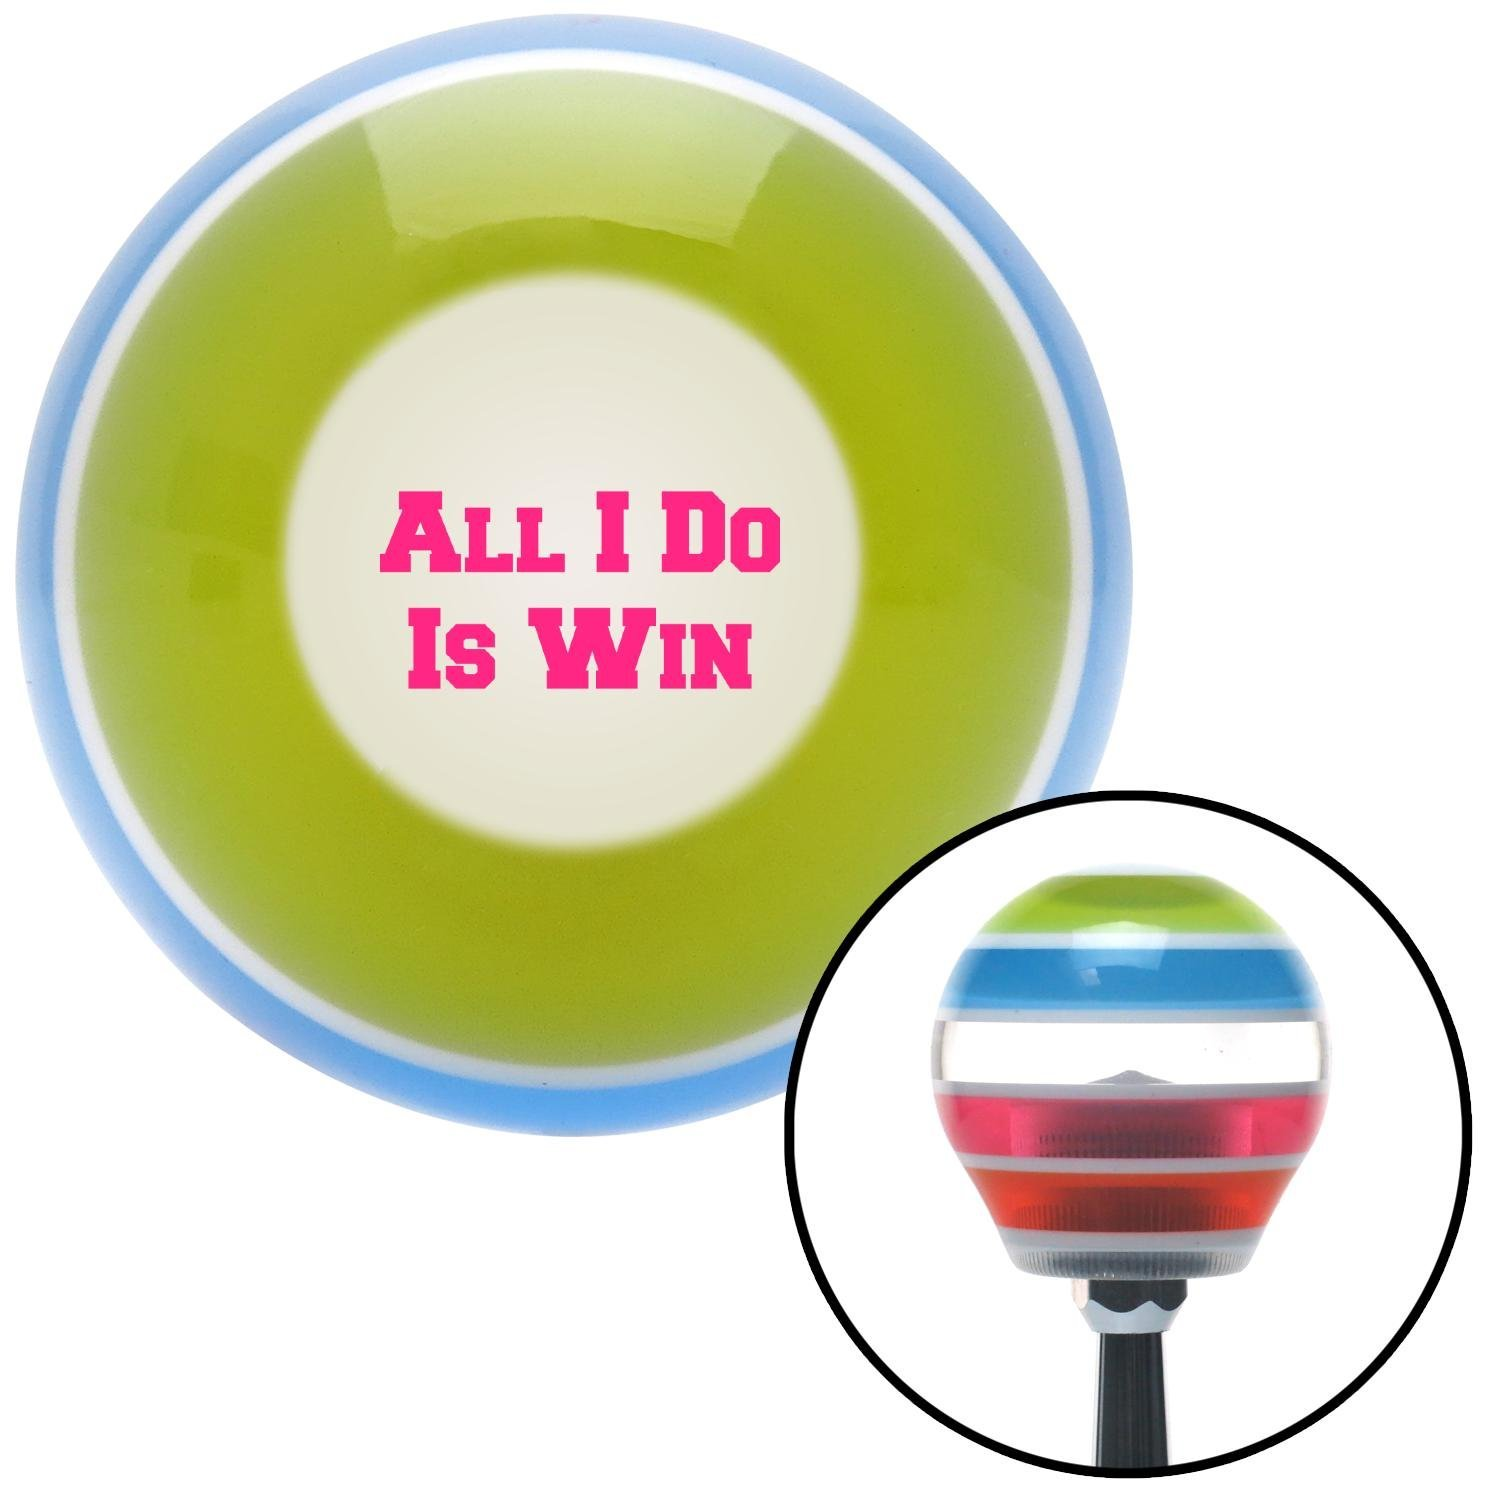 American Shifter 272612 Pink All I Do is Win Stripe Shift Knob with M16 x 1.5 Insert